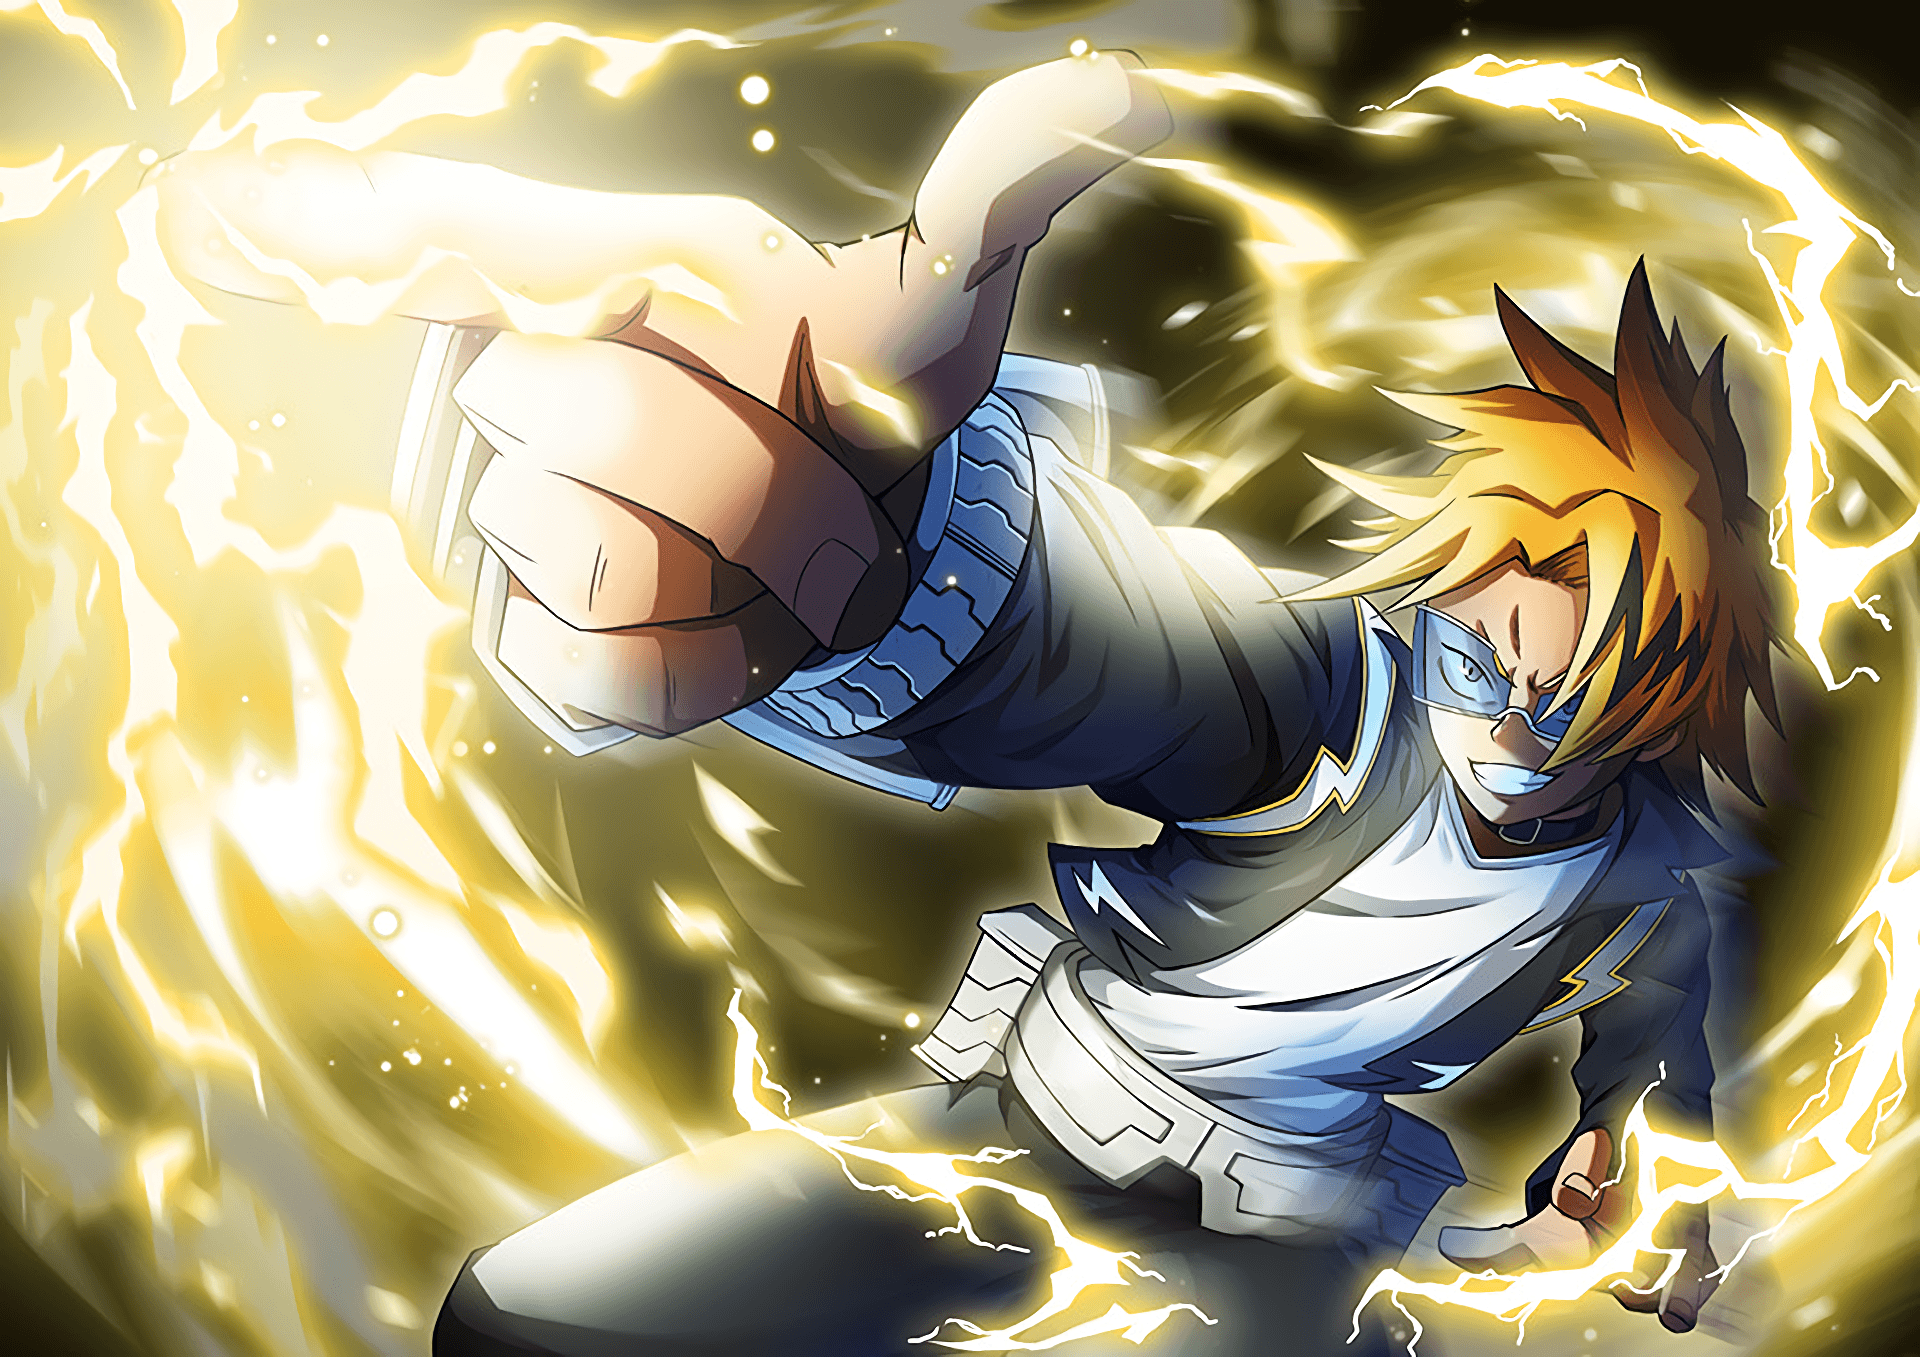 Denki Kaminari 4k Wallpapers Top Free Denki Kaminari 4k Backgrounds Wallpaperaccess It's where your interests connect you with.read denki kaminari from the story bnha characters & ships by bnha_obsessed (q u e e n) with 310 reads. denki kaminari 4k wallpapers top free